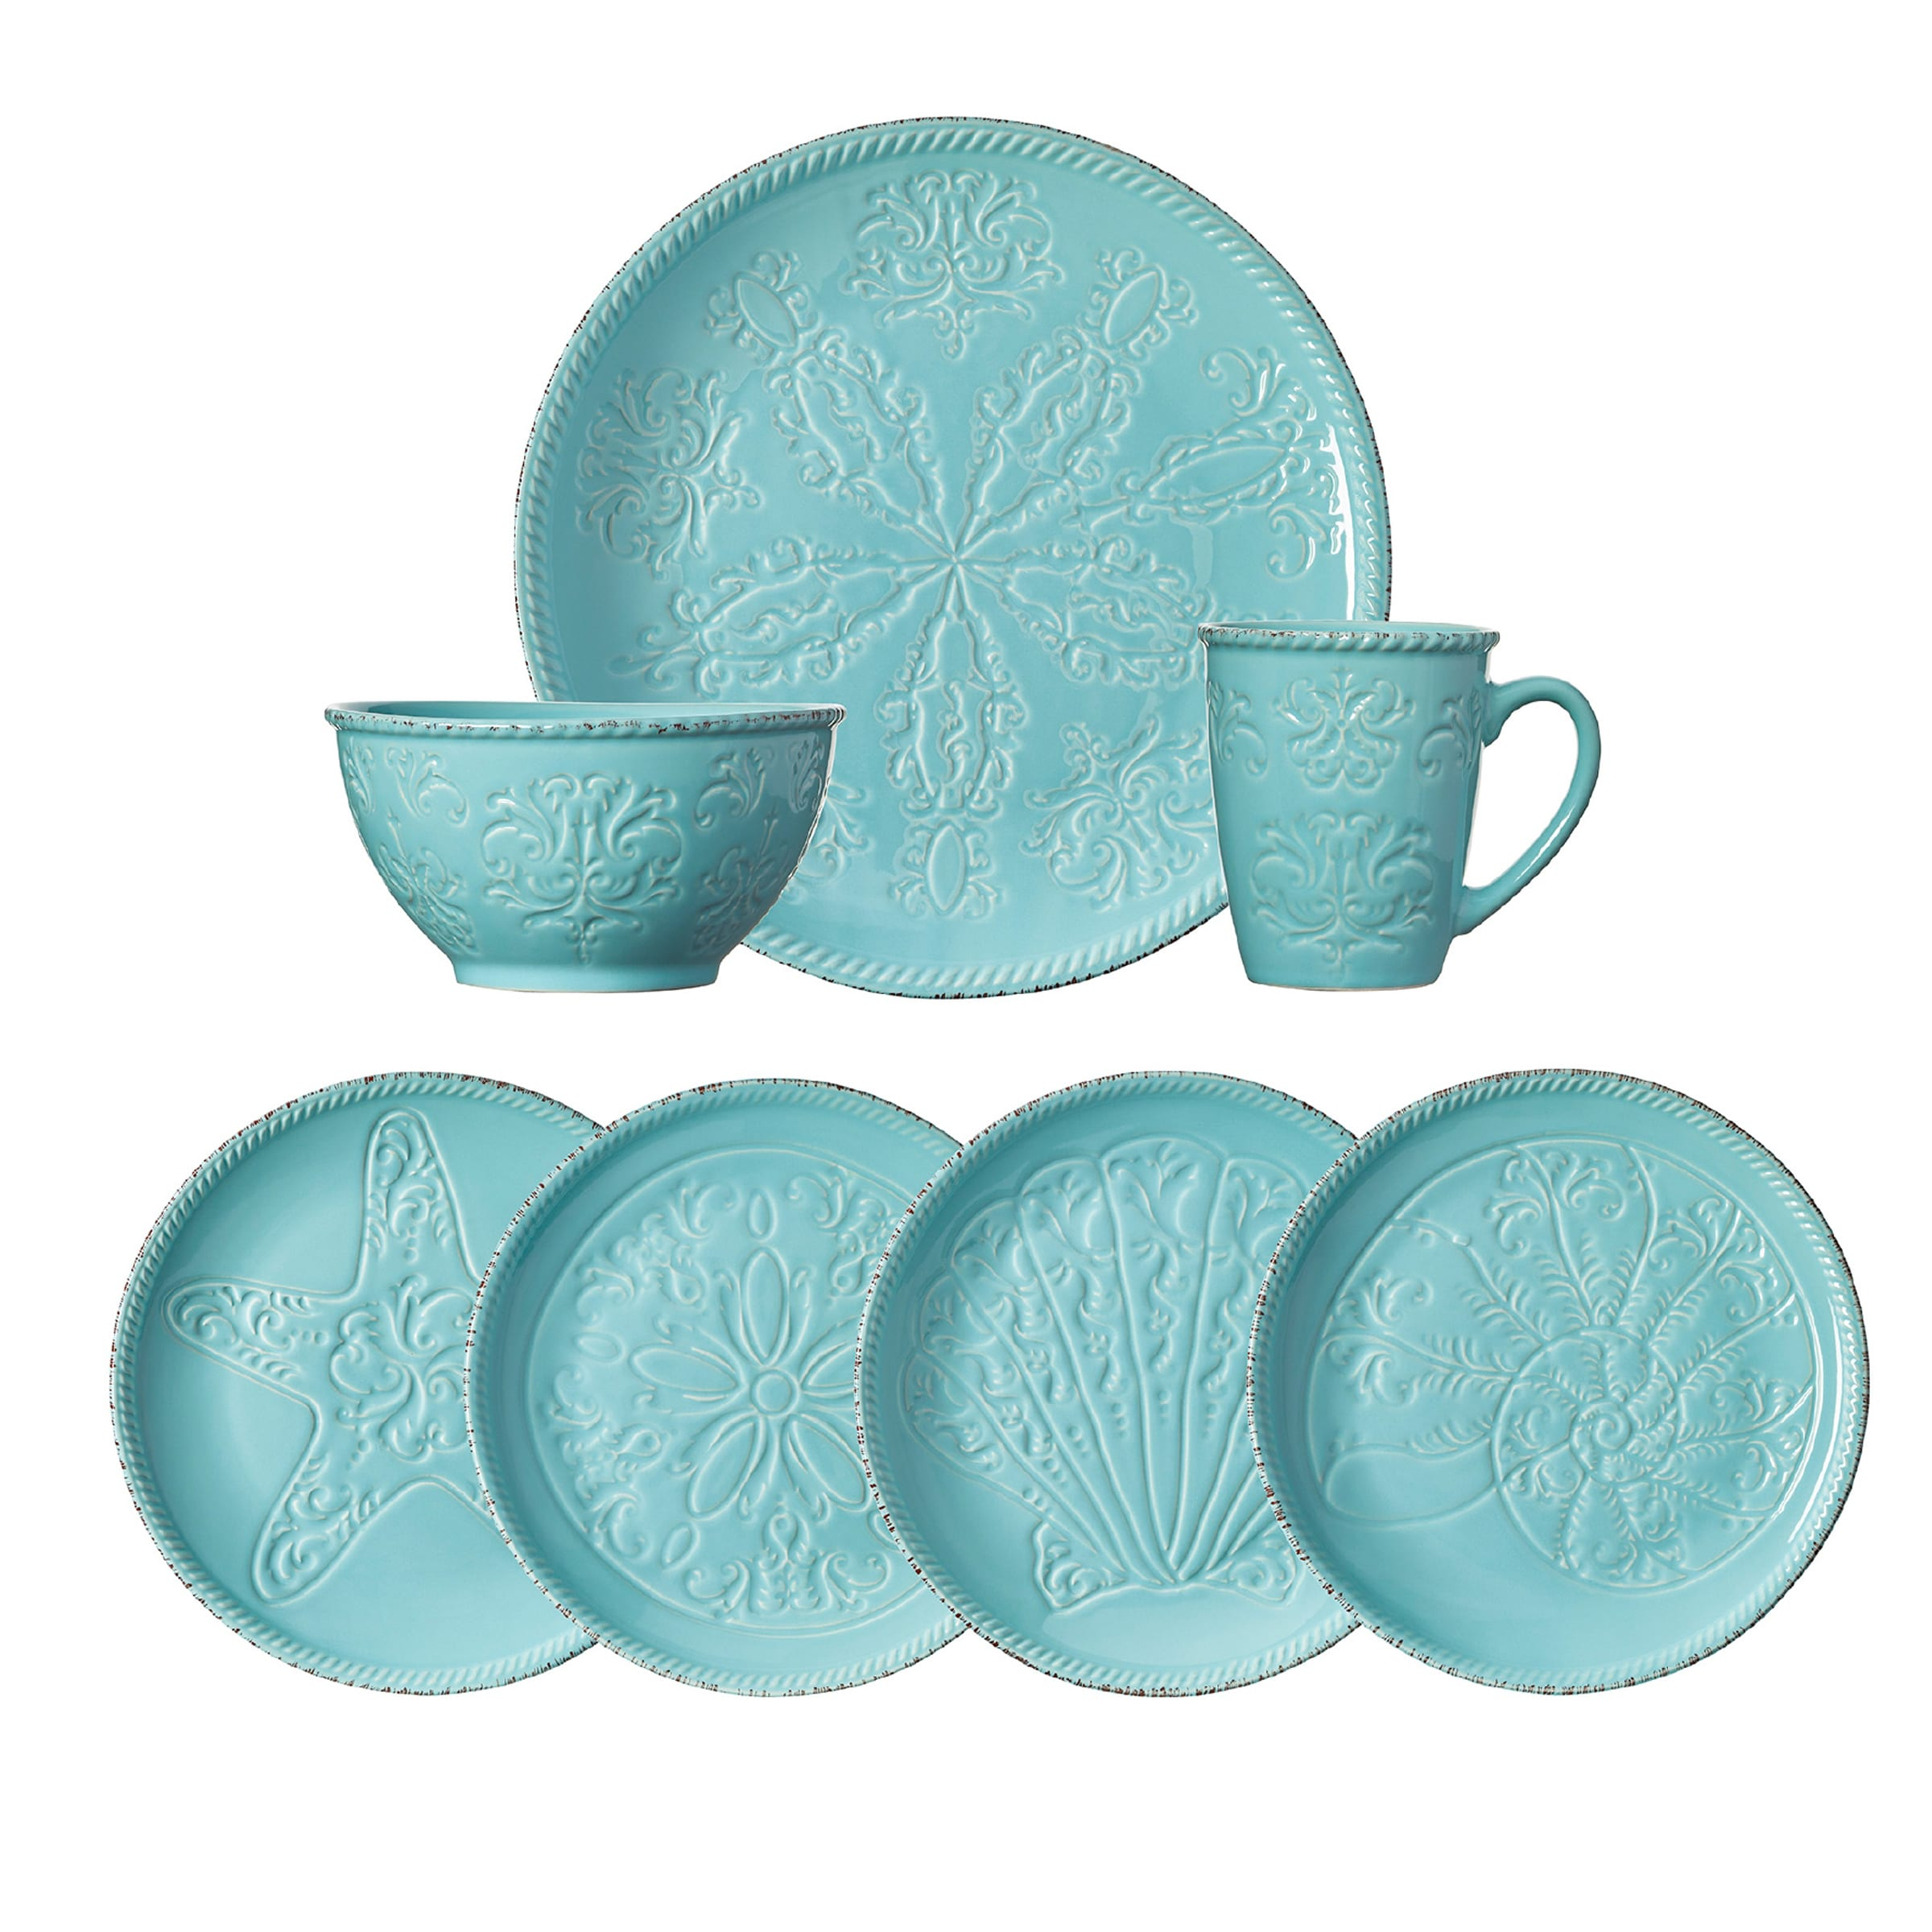 Pfaltzgraff Everyday Malibu 16-piece Dinnerware Set (Service for 4) - Free Shipping Today - Overstock.com - 19737049  sc 1 st  Overstock.com : every day dinnerware - pezcame.com